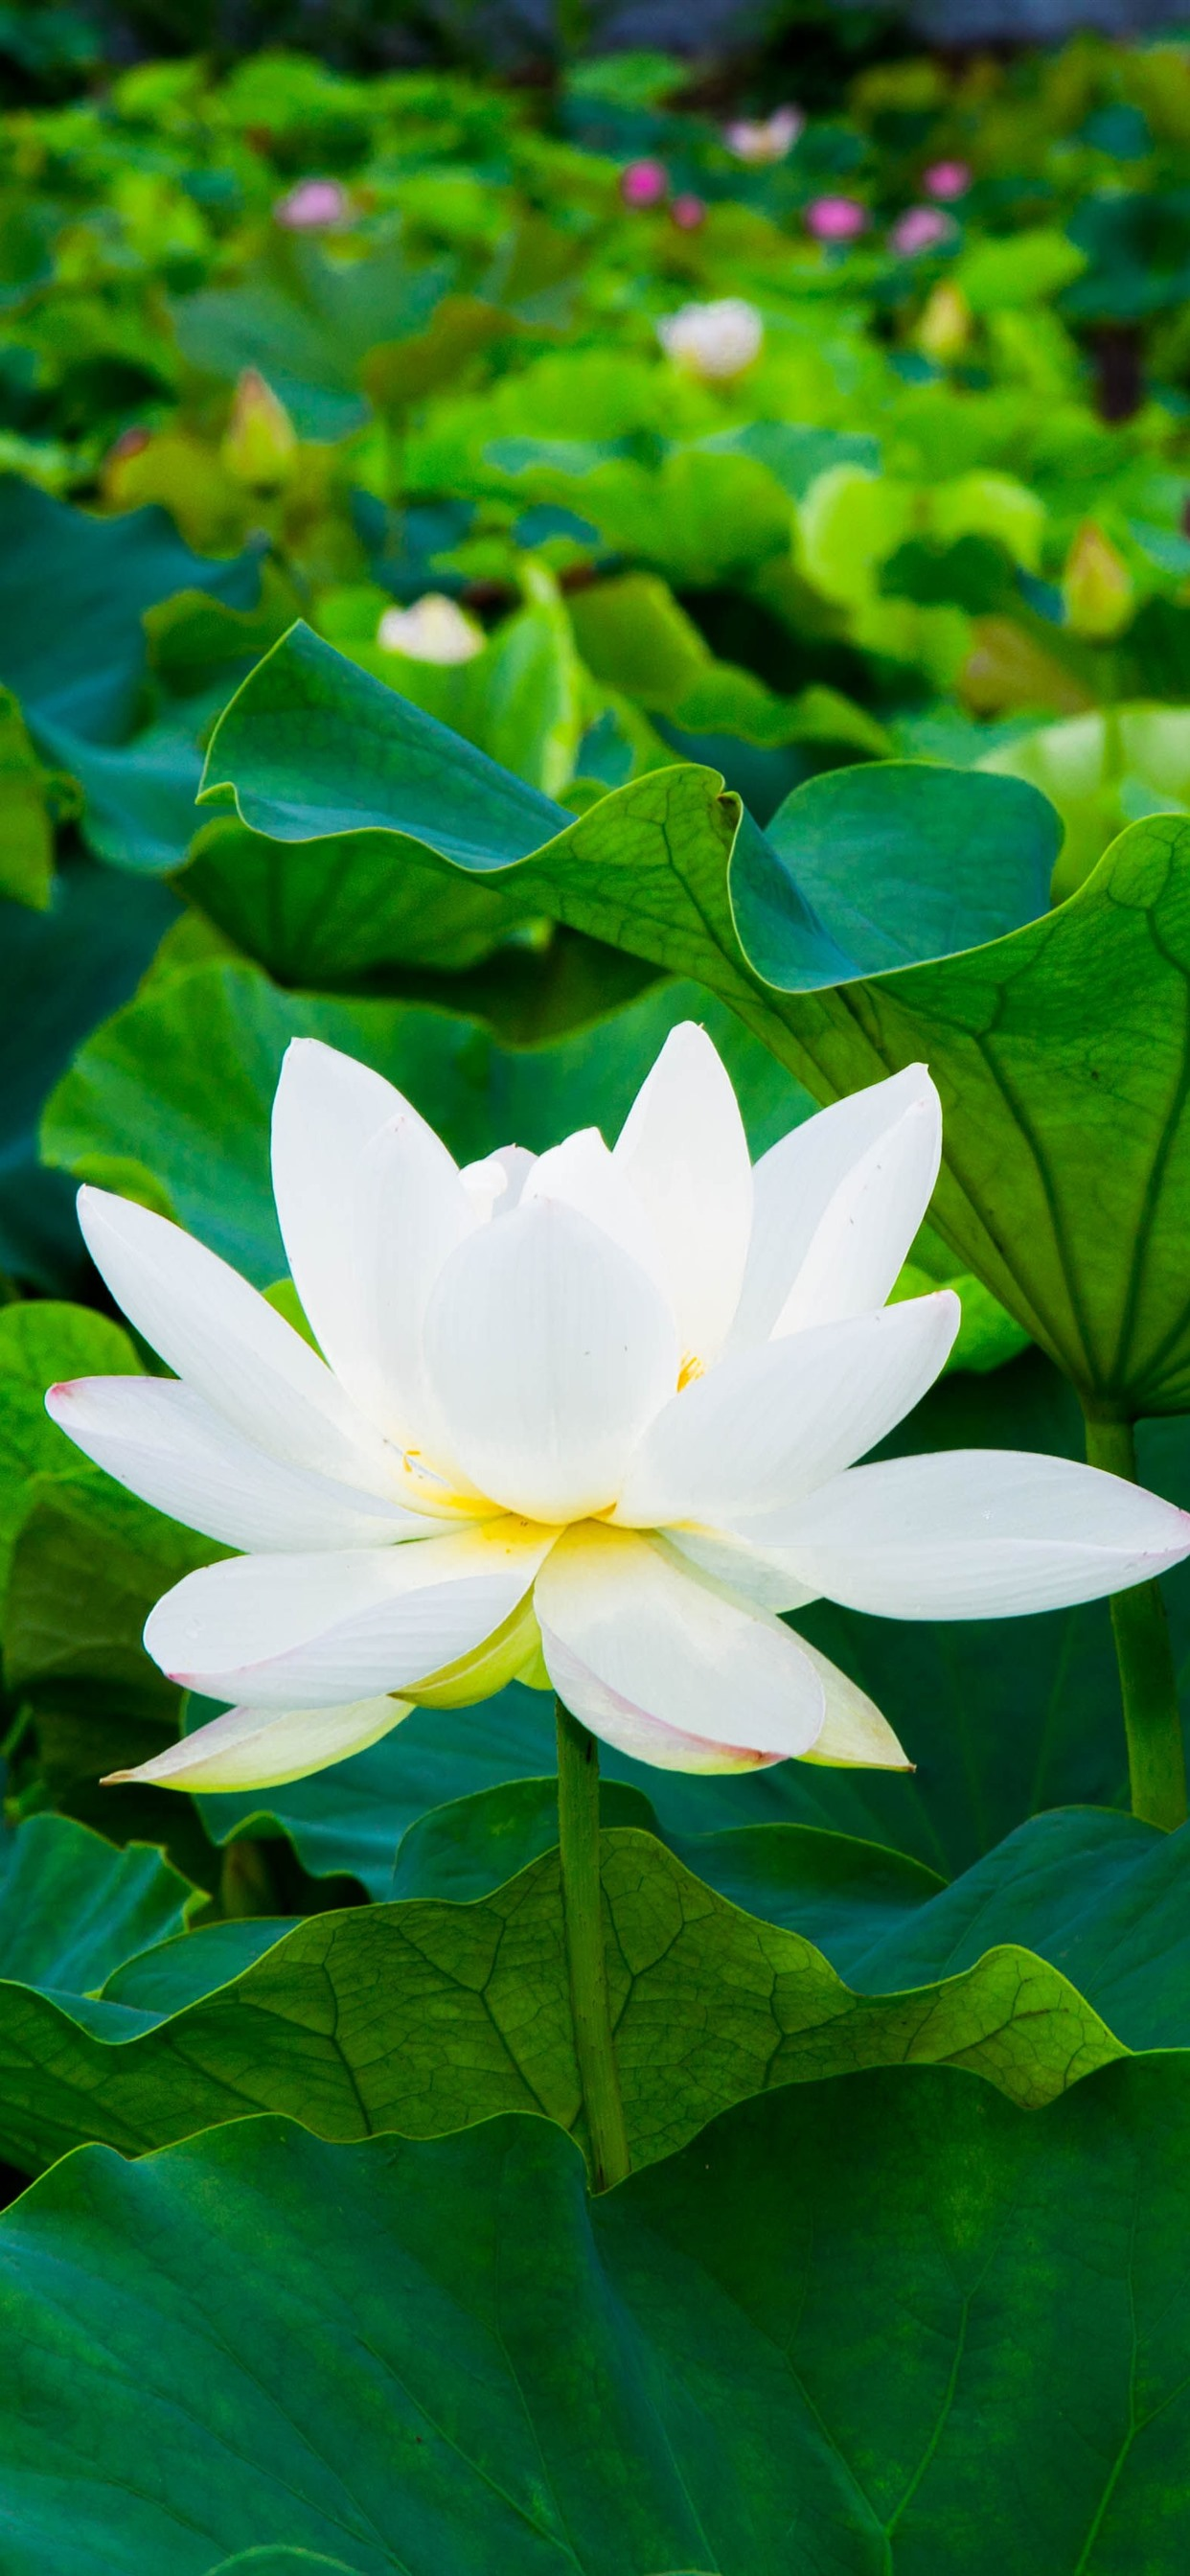 White Lotus Green Leaves Flowers 1242x2688 Iphone Xs Max Wallpaper